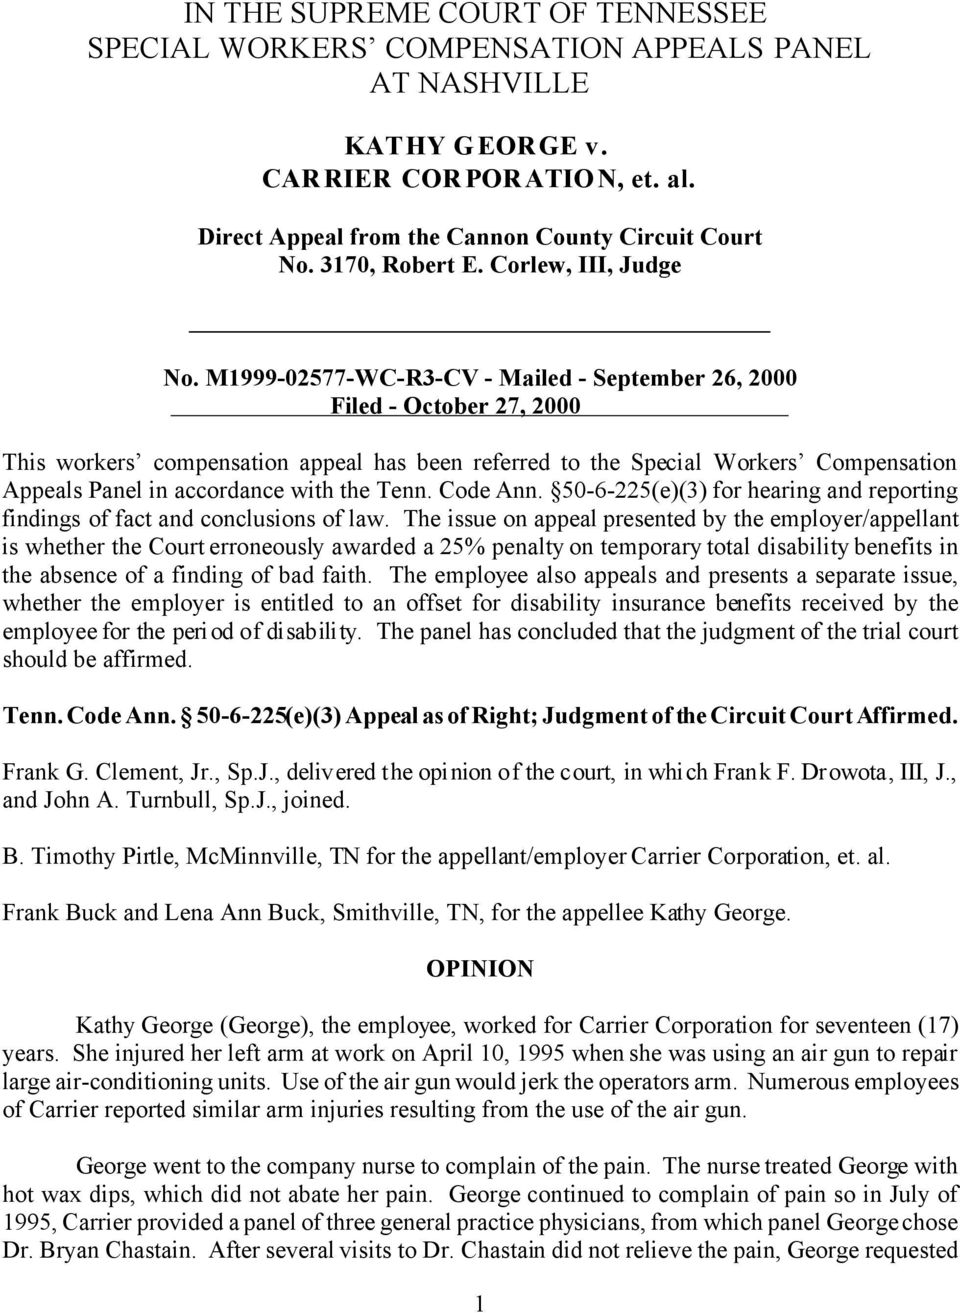 M1999-02577-WC-R3-CV - Mailed - September 26, 2000 Filed - October 27, 2000 This workers compensation appeal has been referred to the Special Workers Compensation Appeals Panel in accordance with the